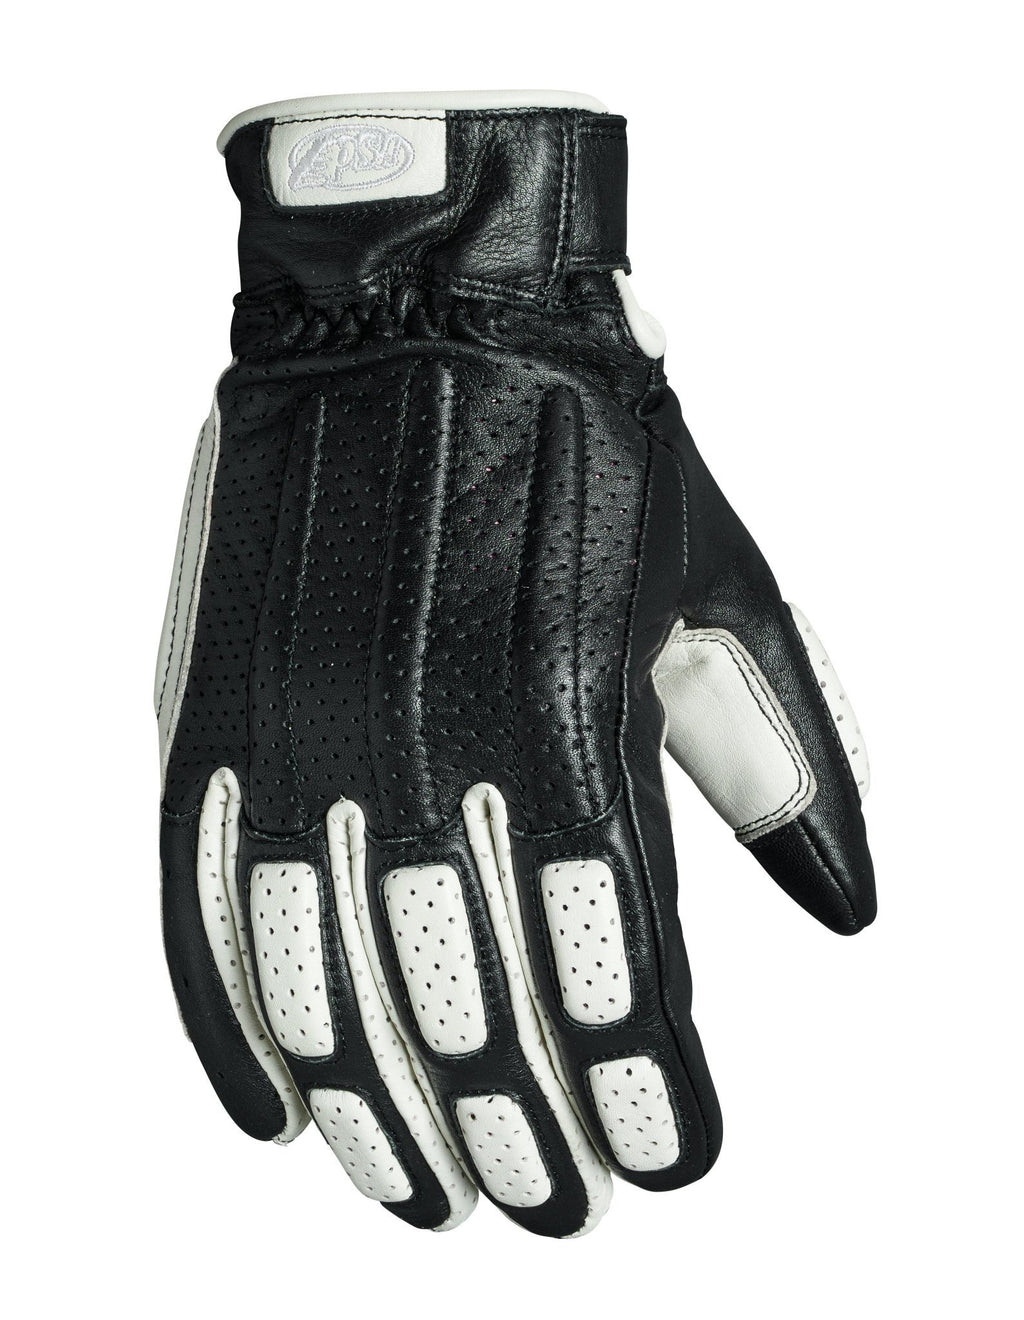 Roland Sands Design - Roland Sands Design Rourke Gloves - Black and White - Gloves - Salt Flats Clothing